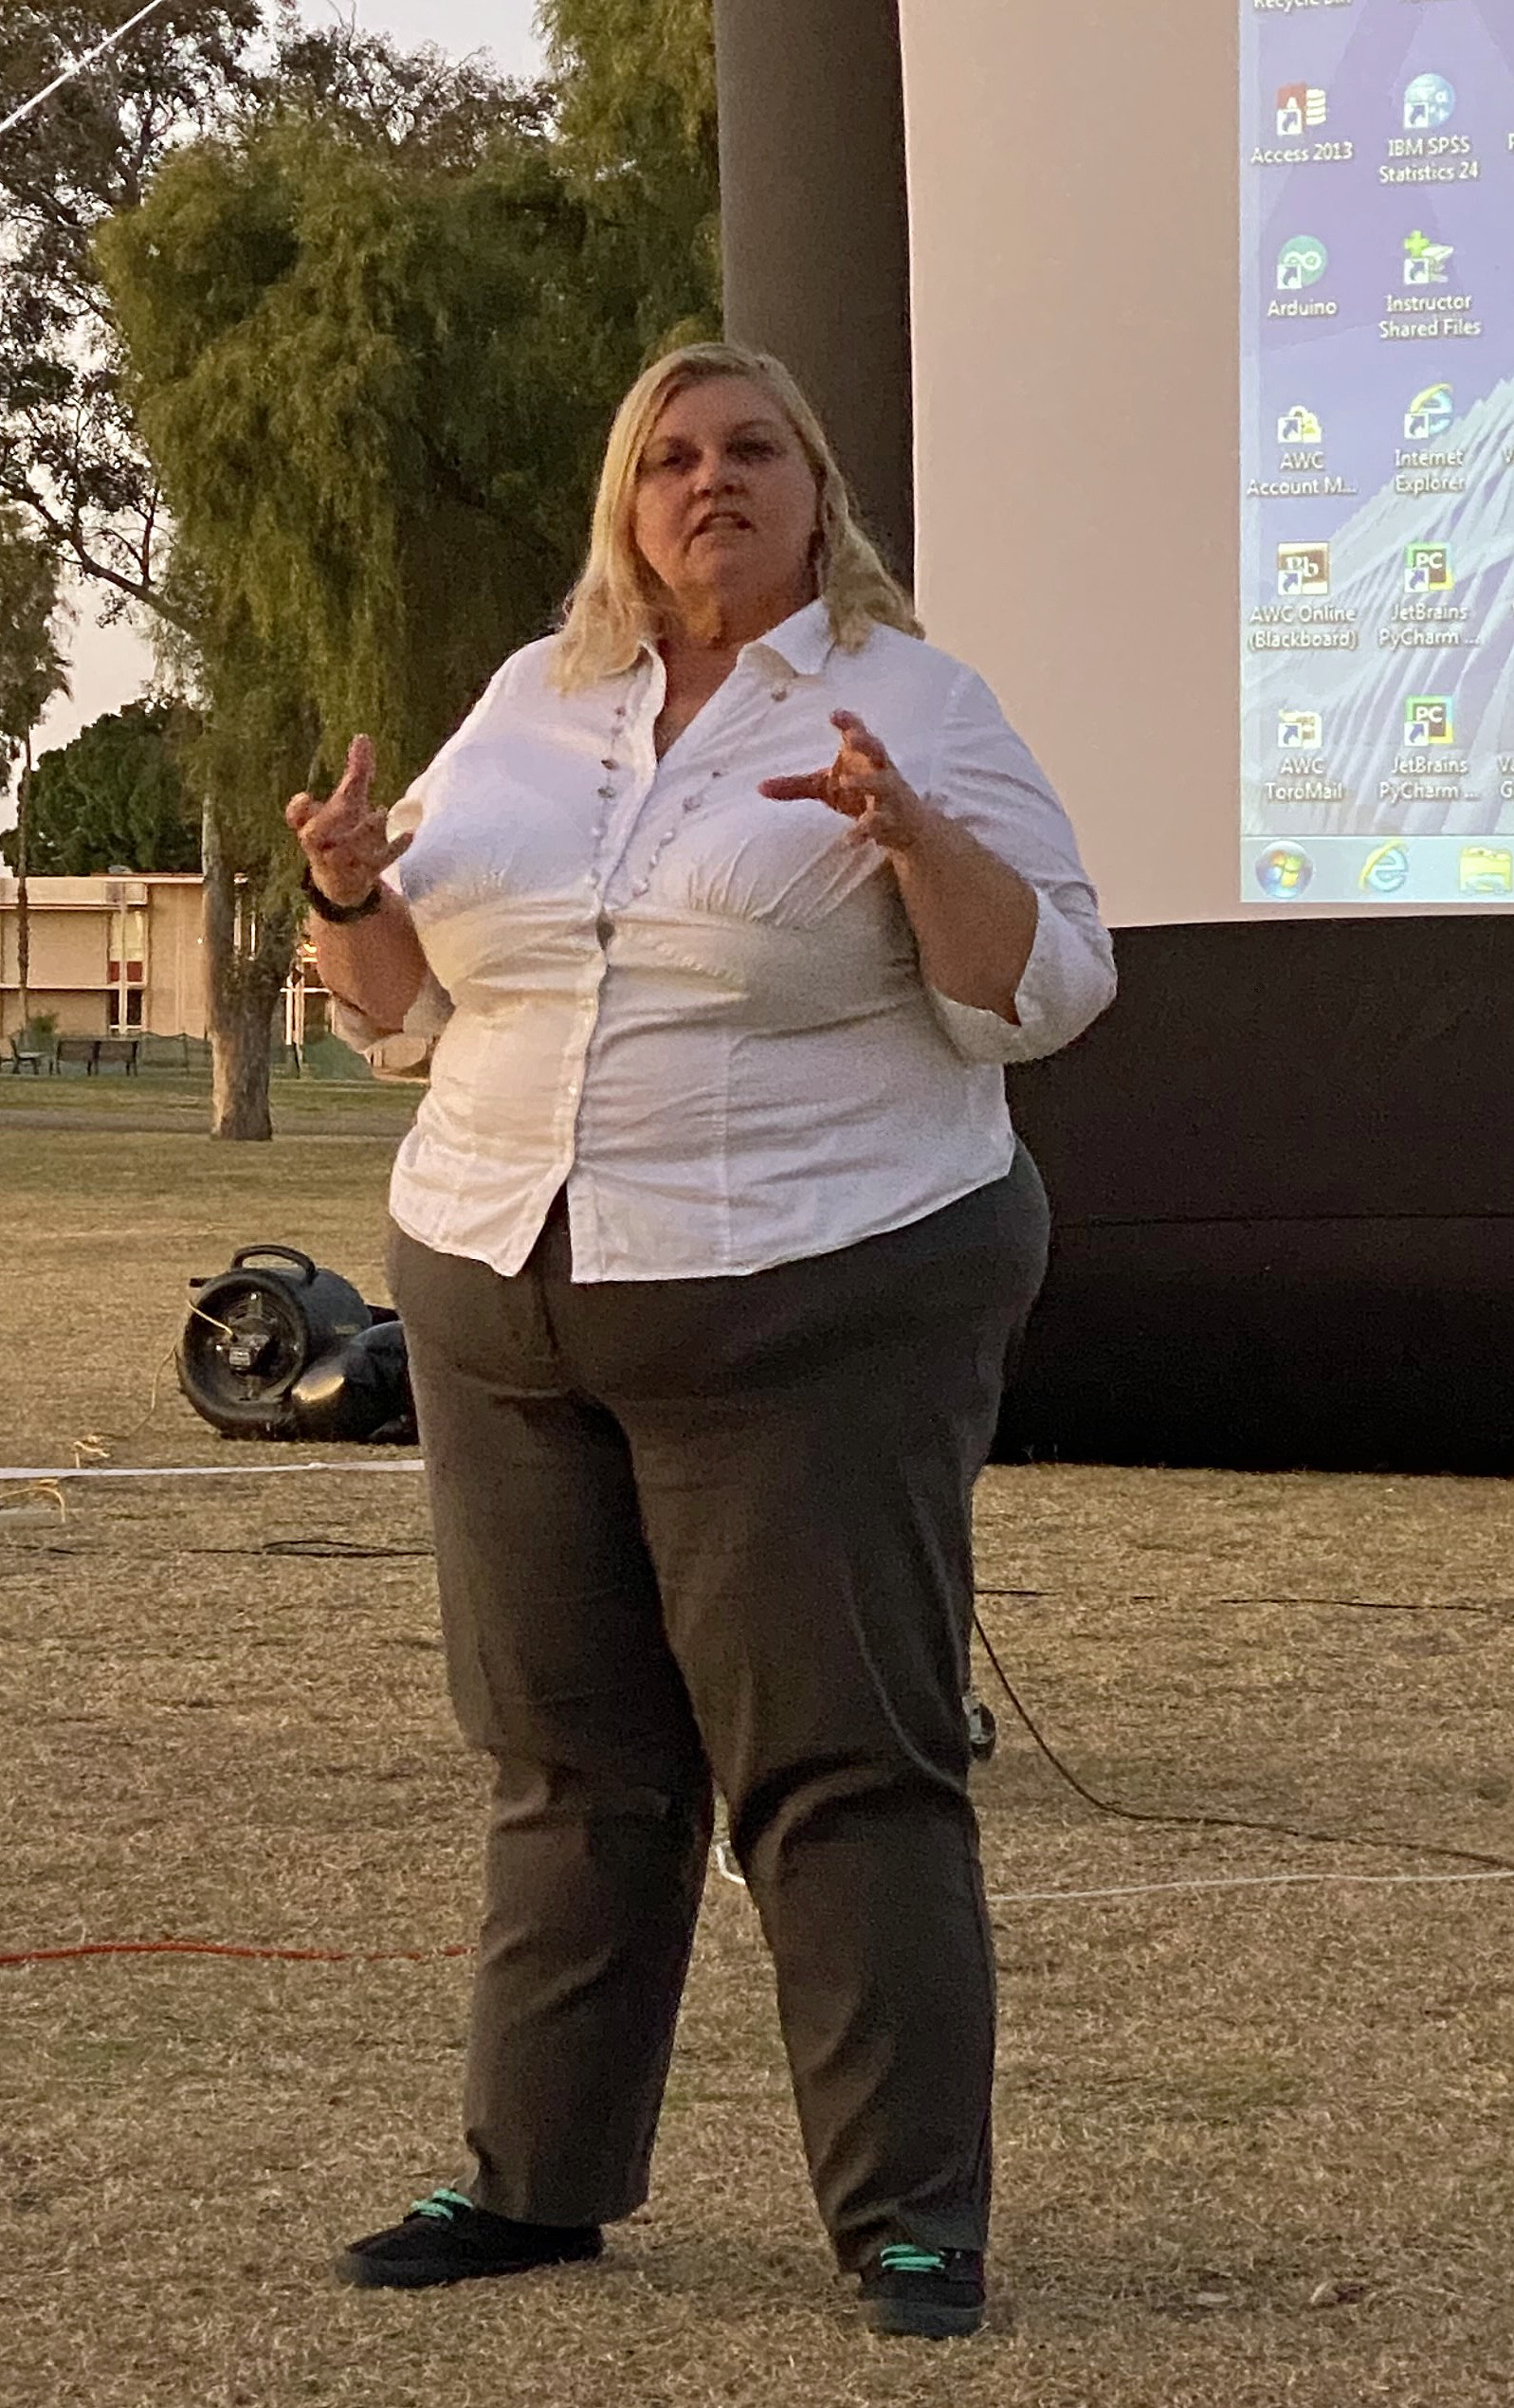 A blonde woman in a white shirt is speaking outdoors in front of a projection screen.